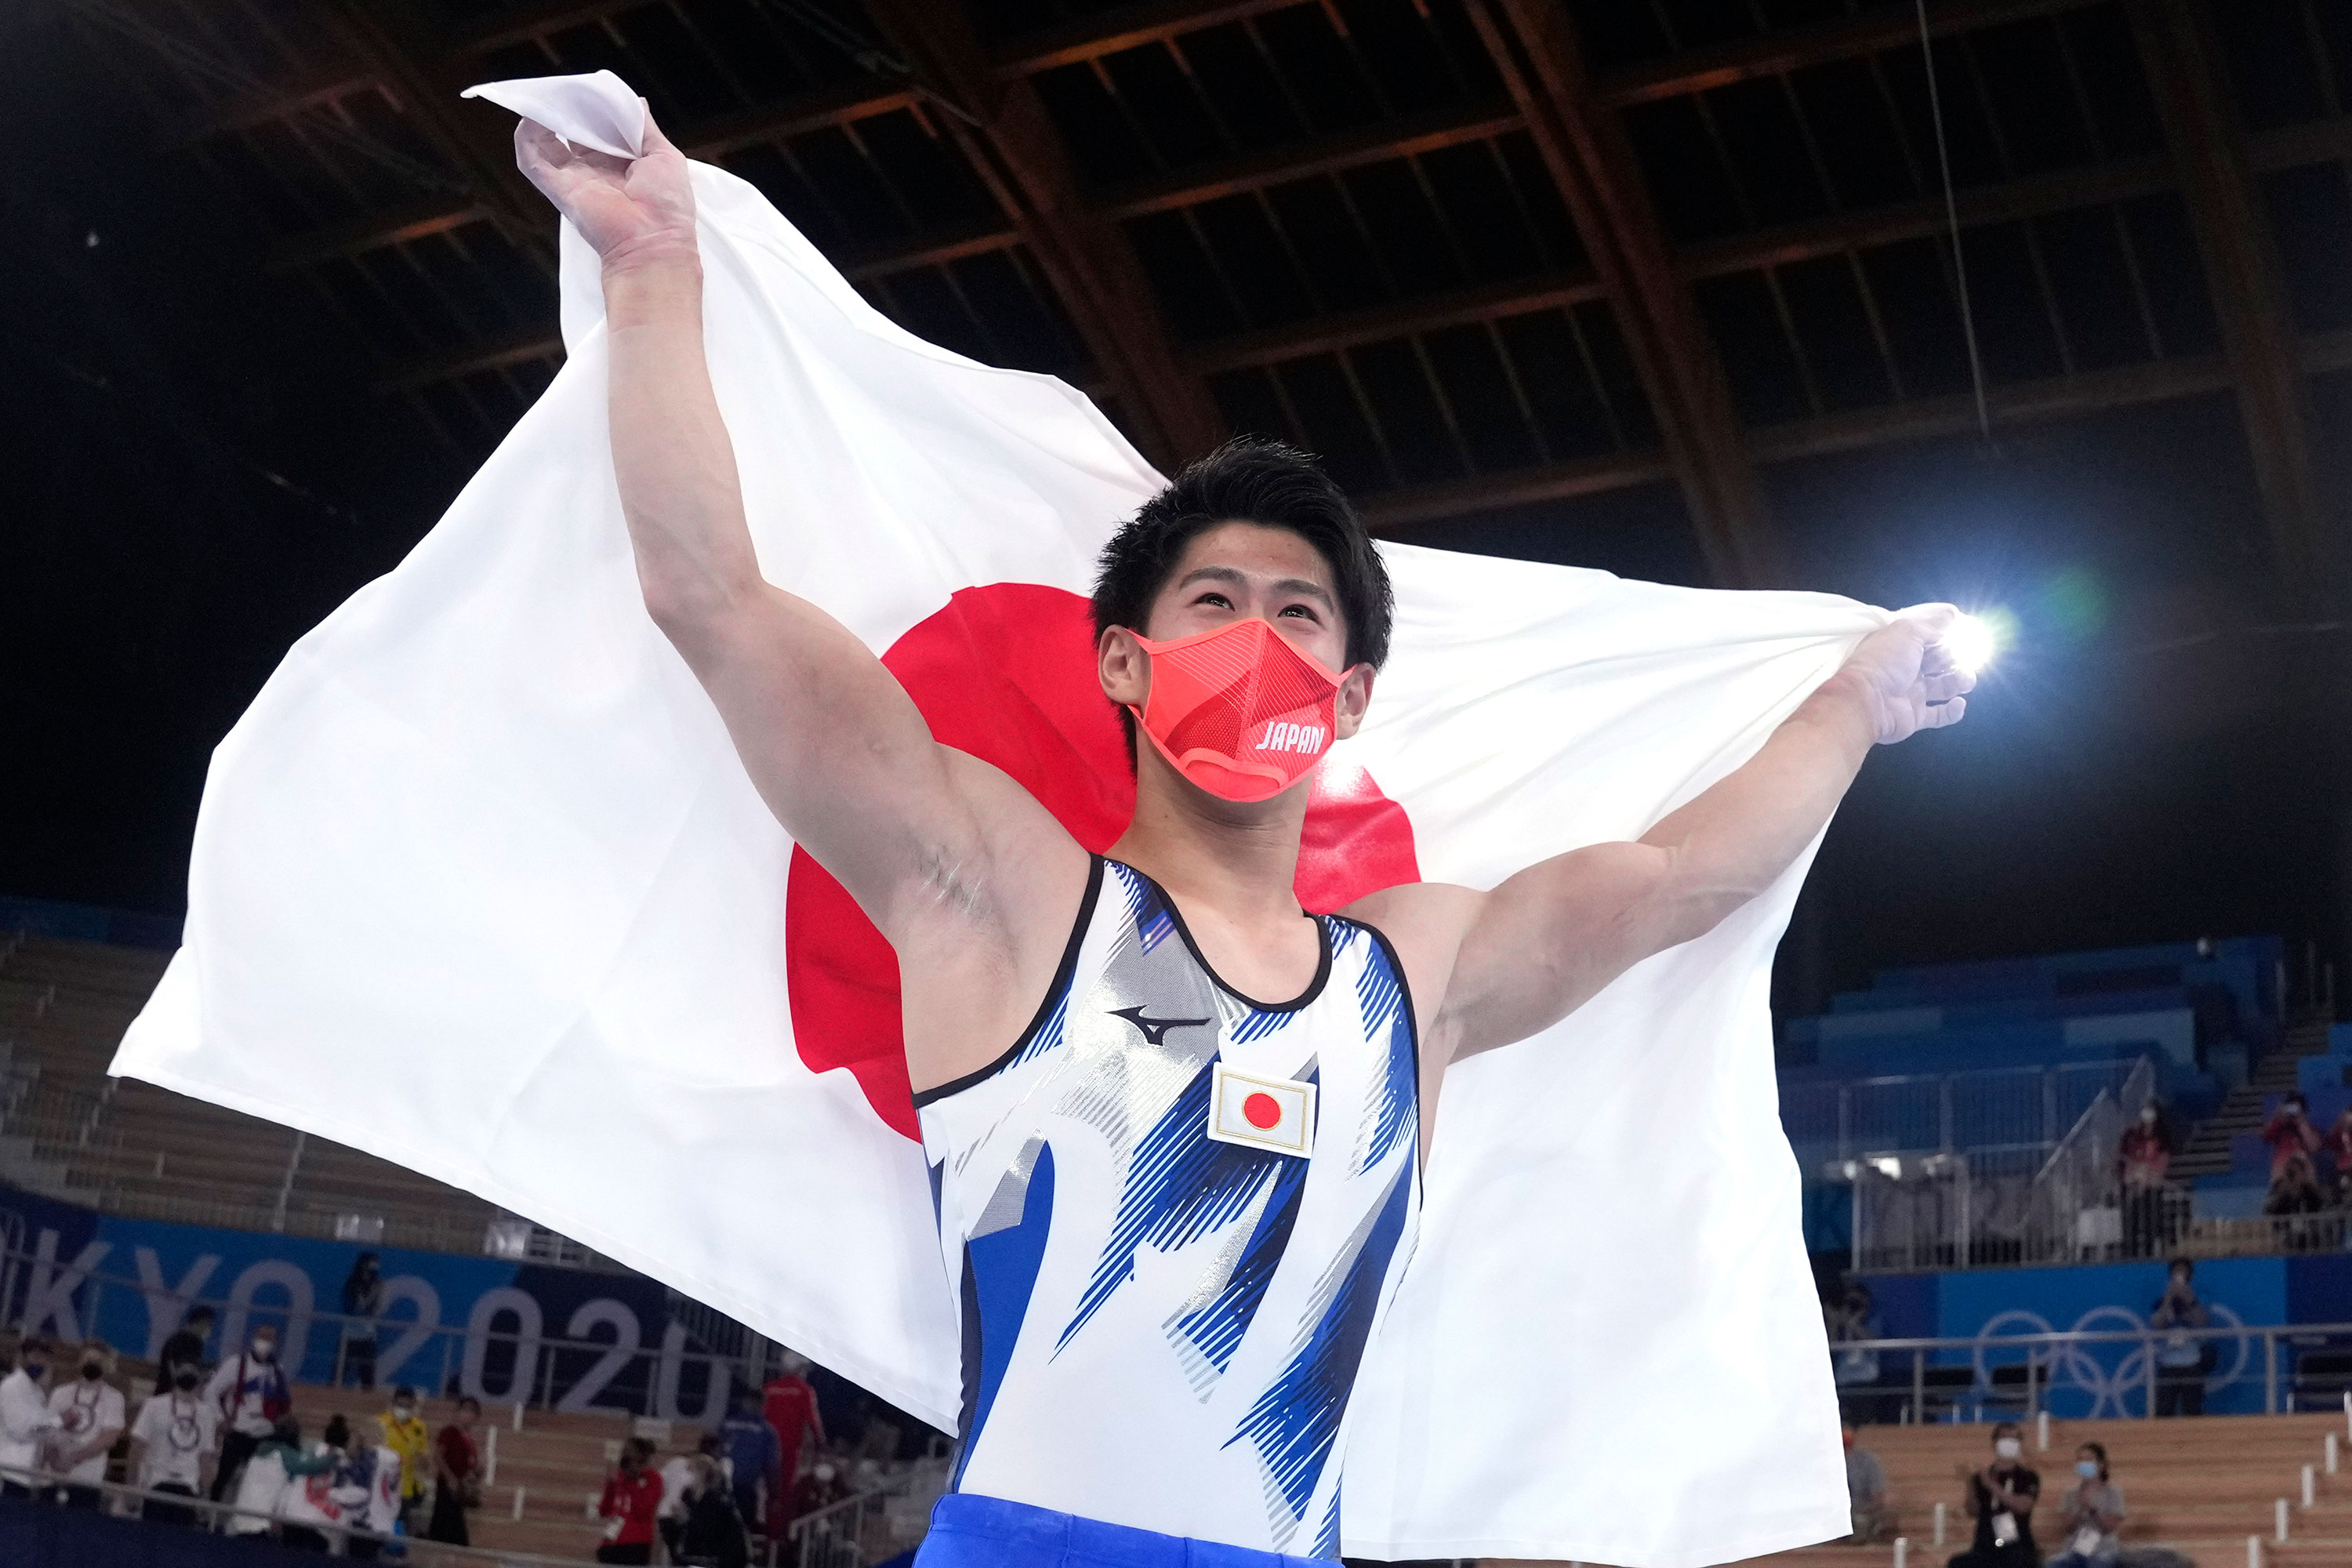 Japanese gold medalists face Chinese nationalist wrath